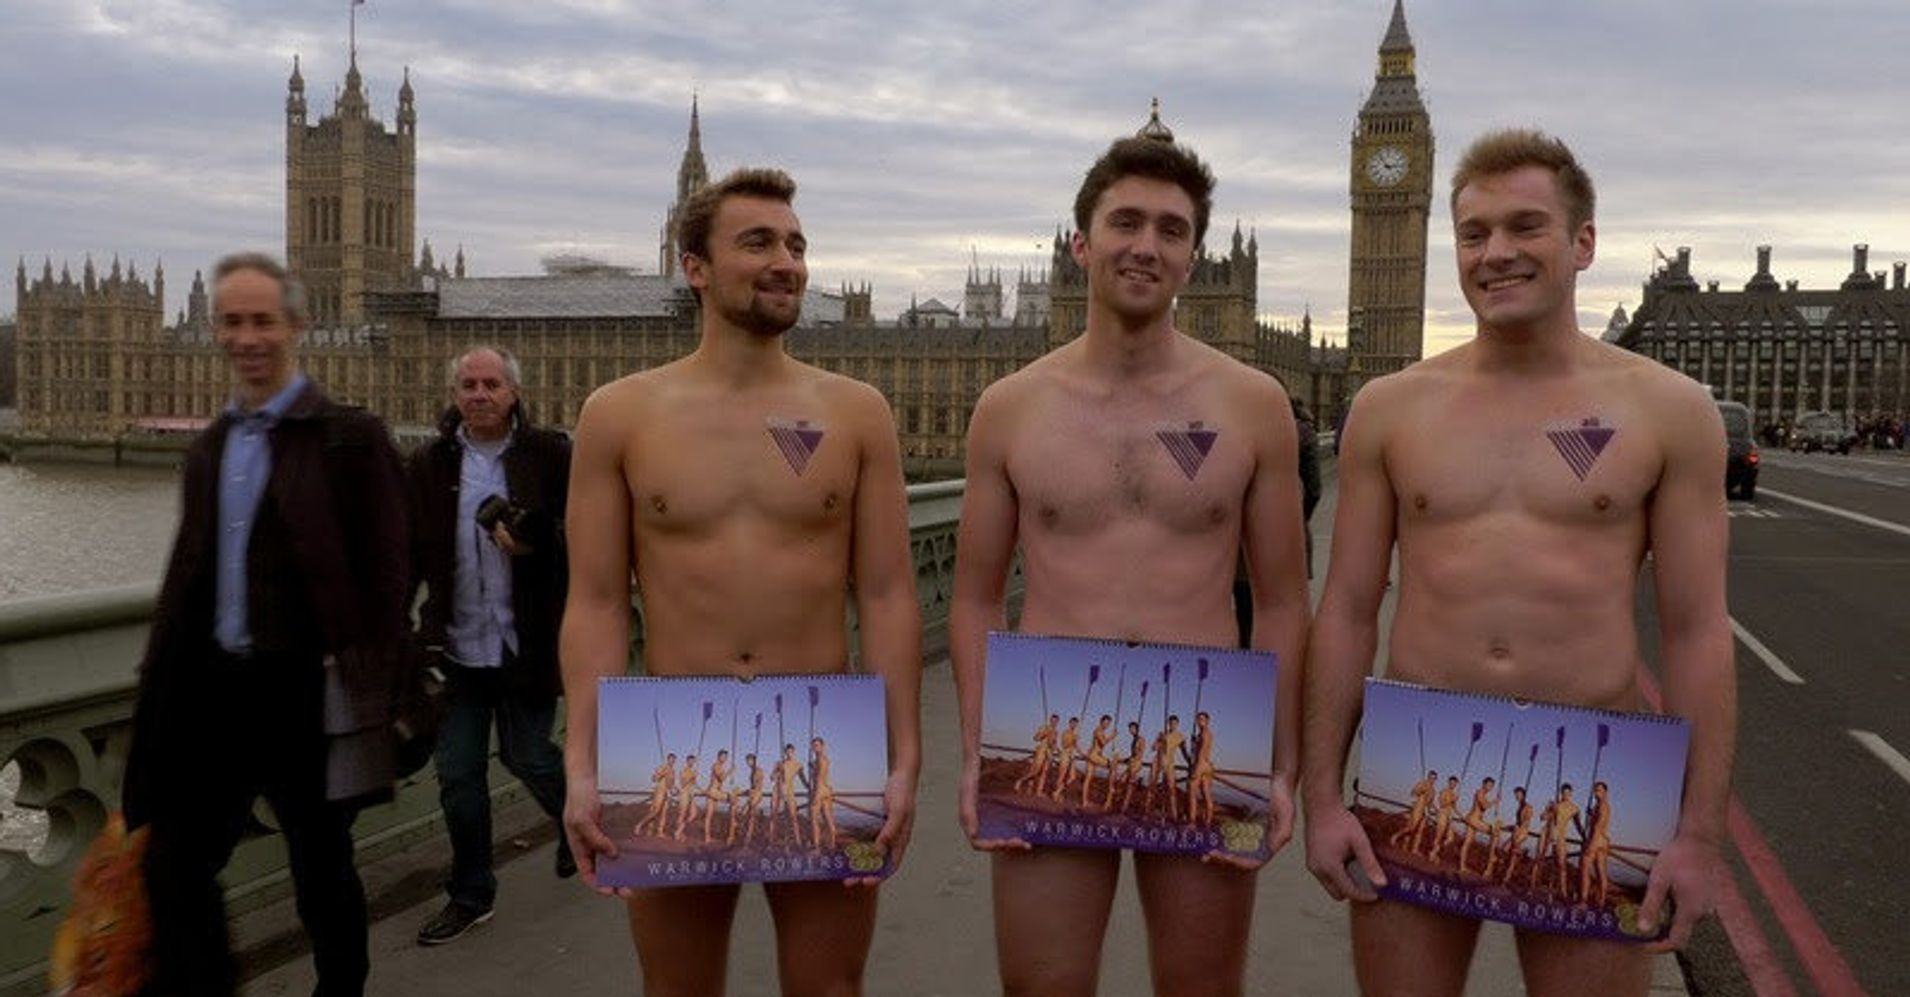 warwick rowers 2016 download